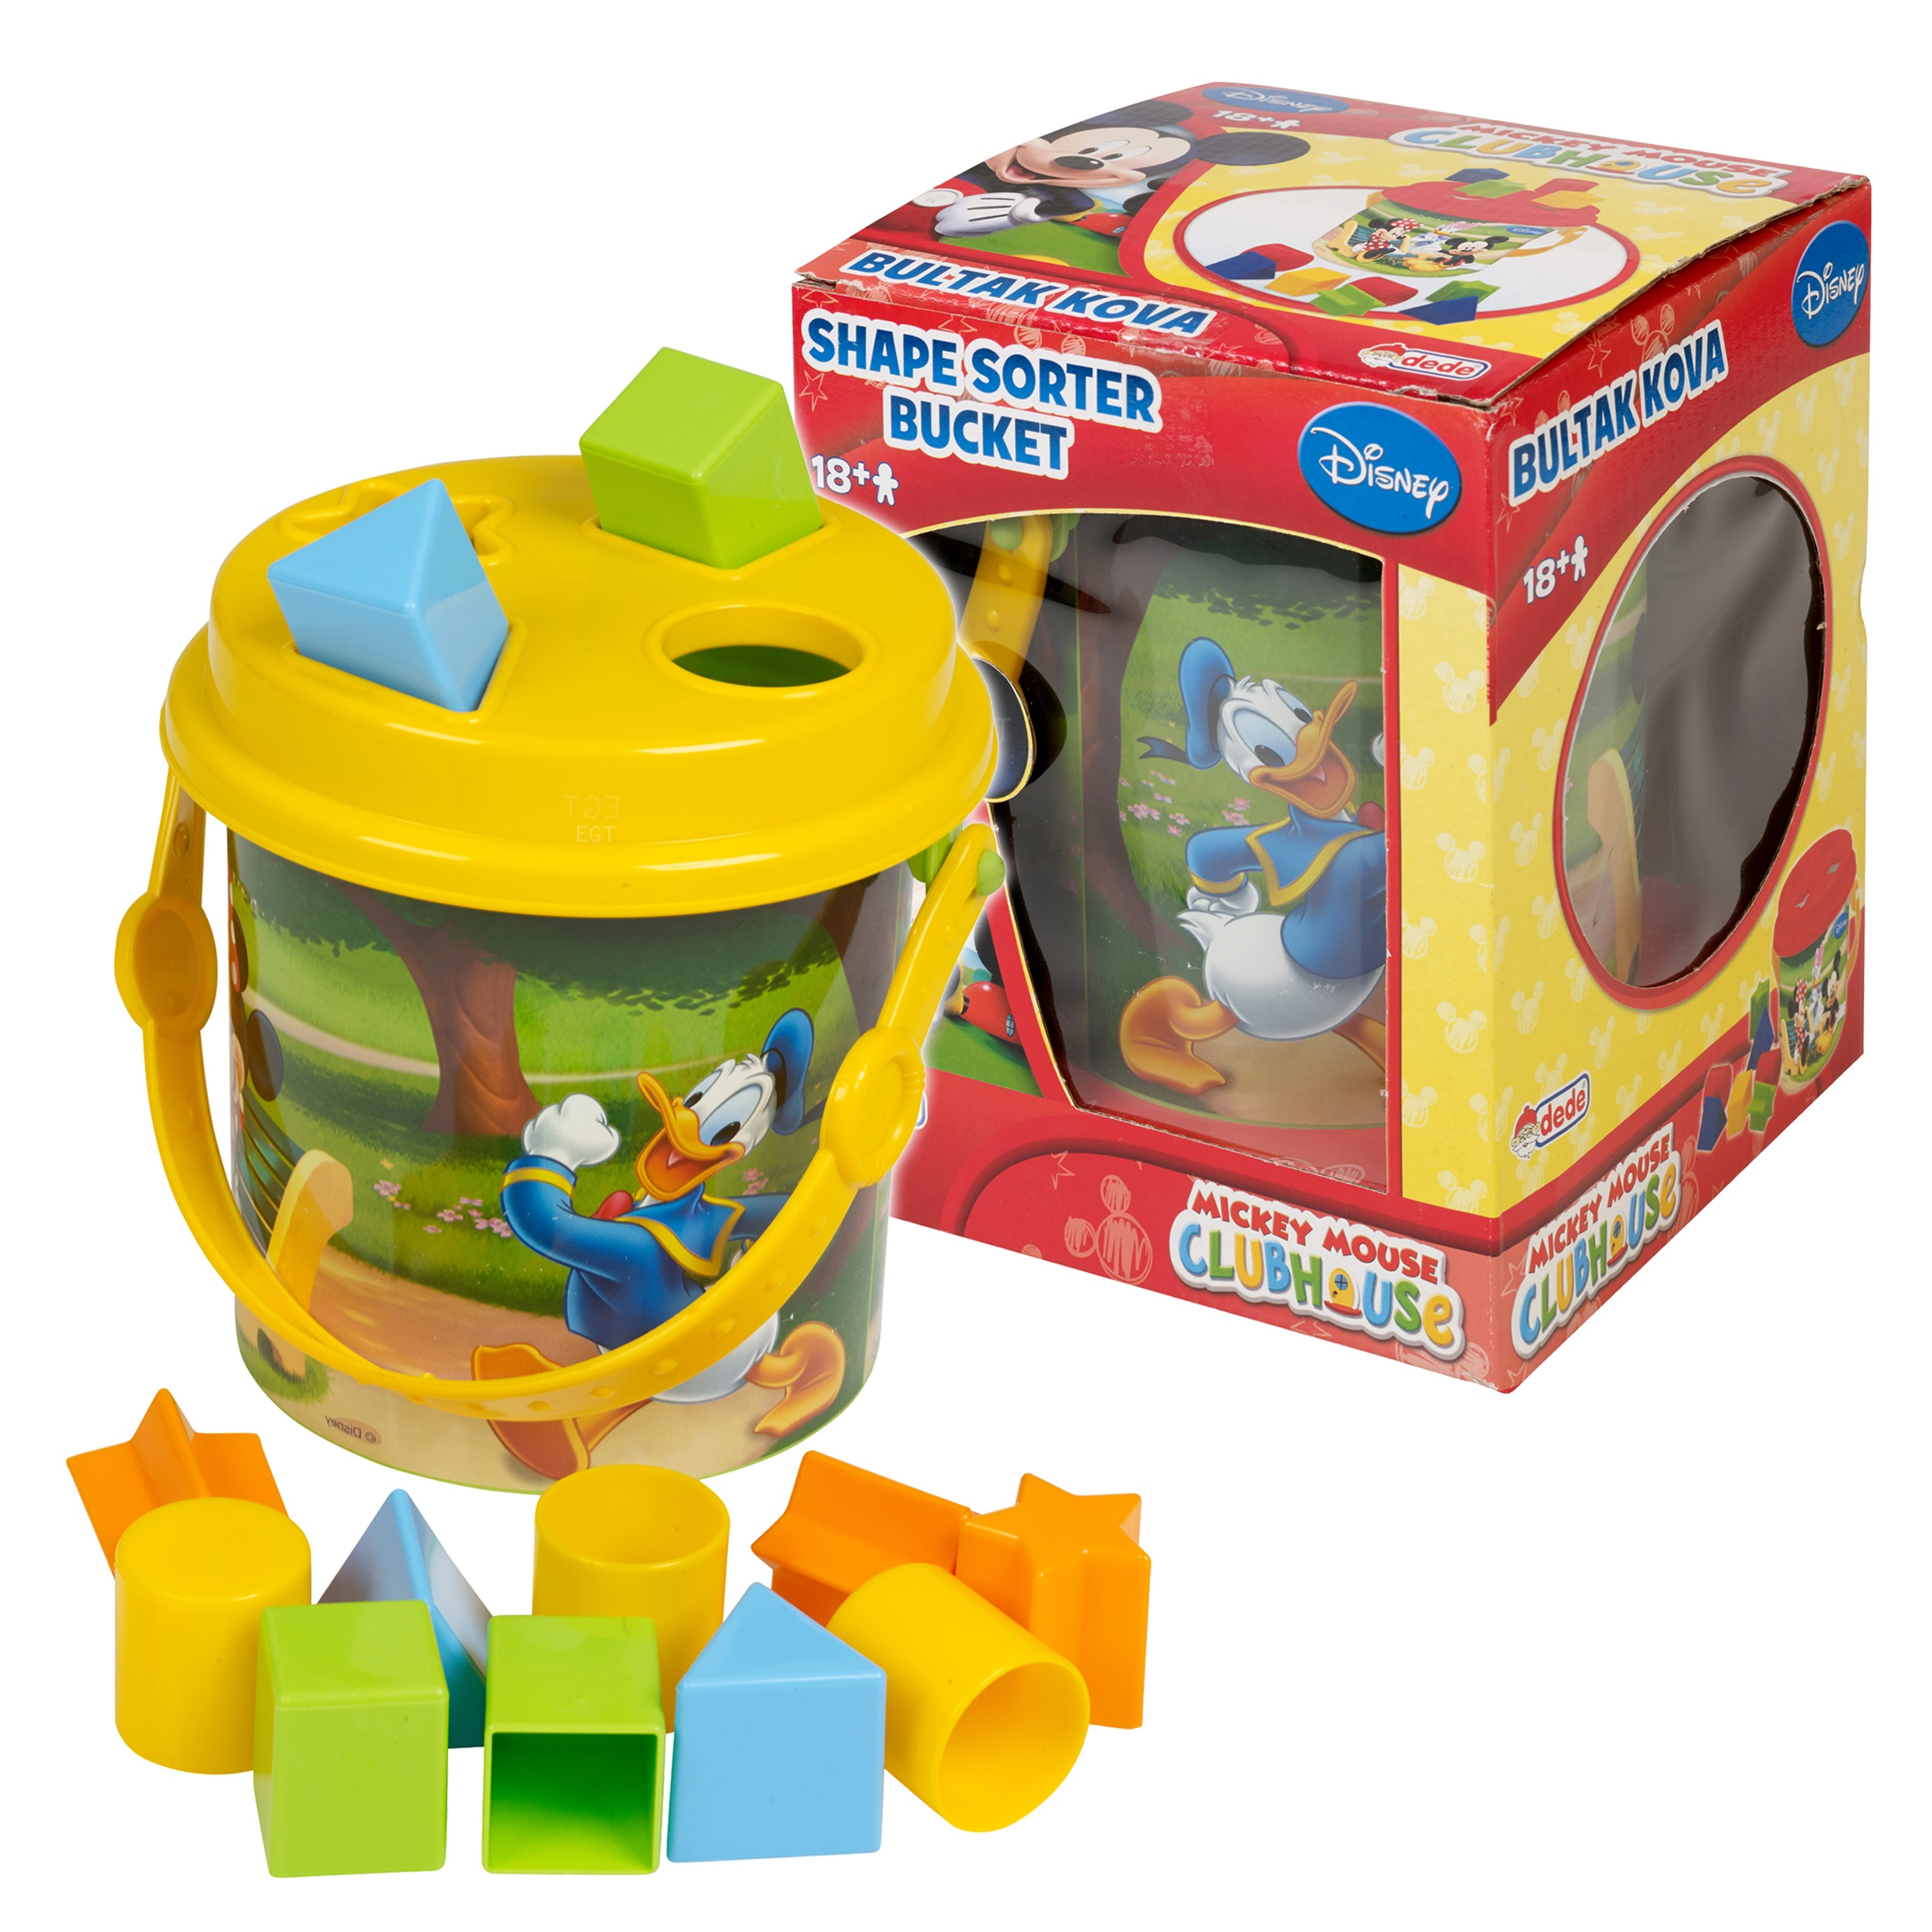 Disney Mickey Mouse Shape Sorter Bucket Baby Toy Toddler ...